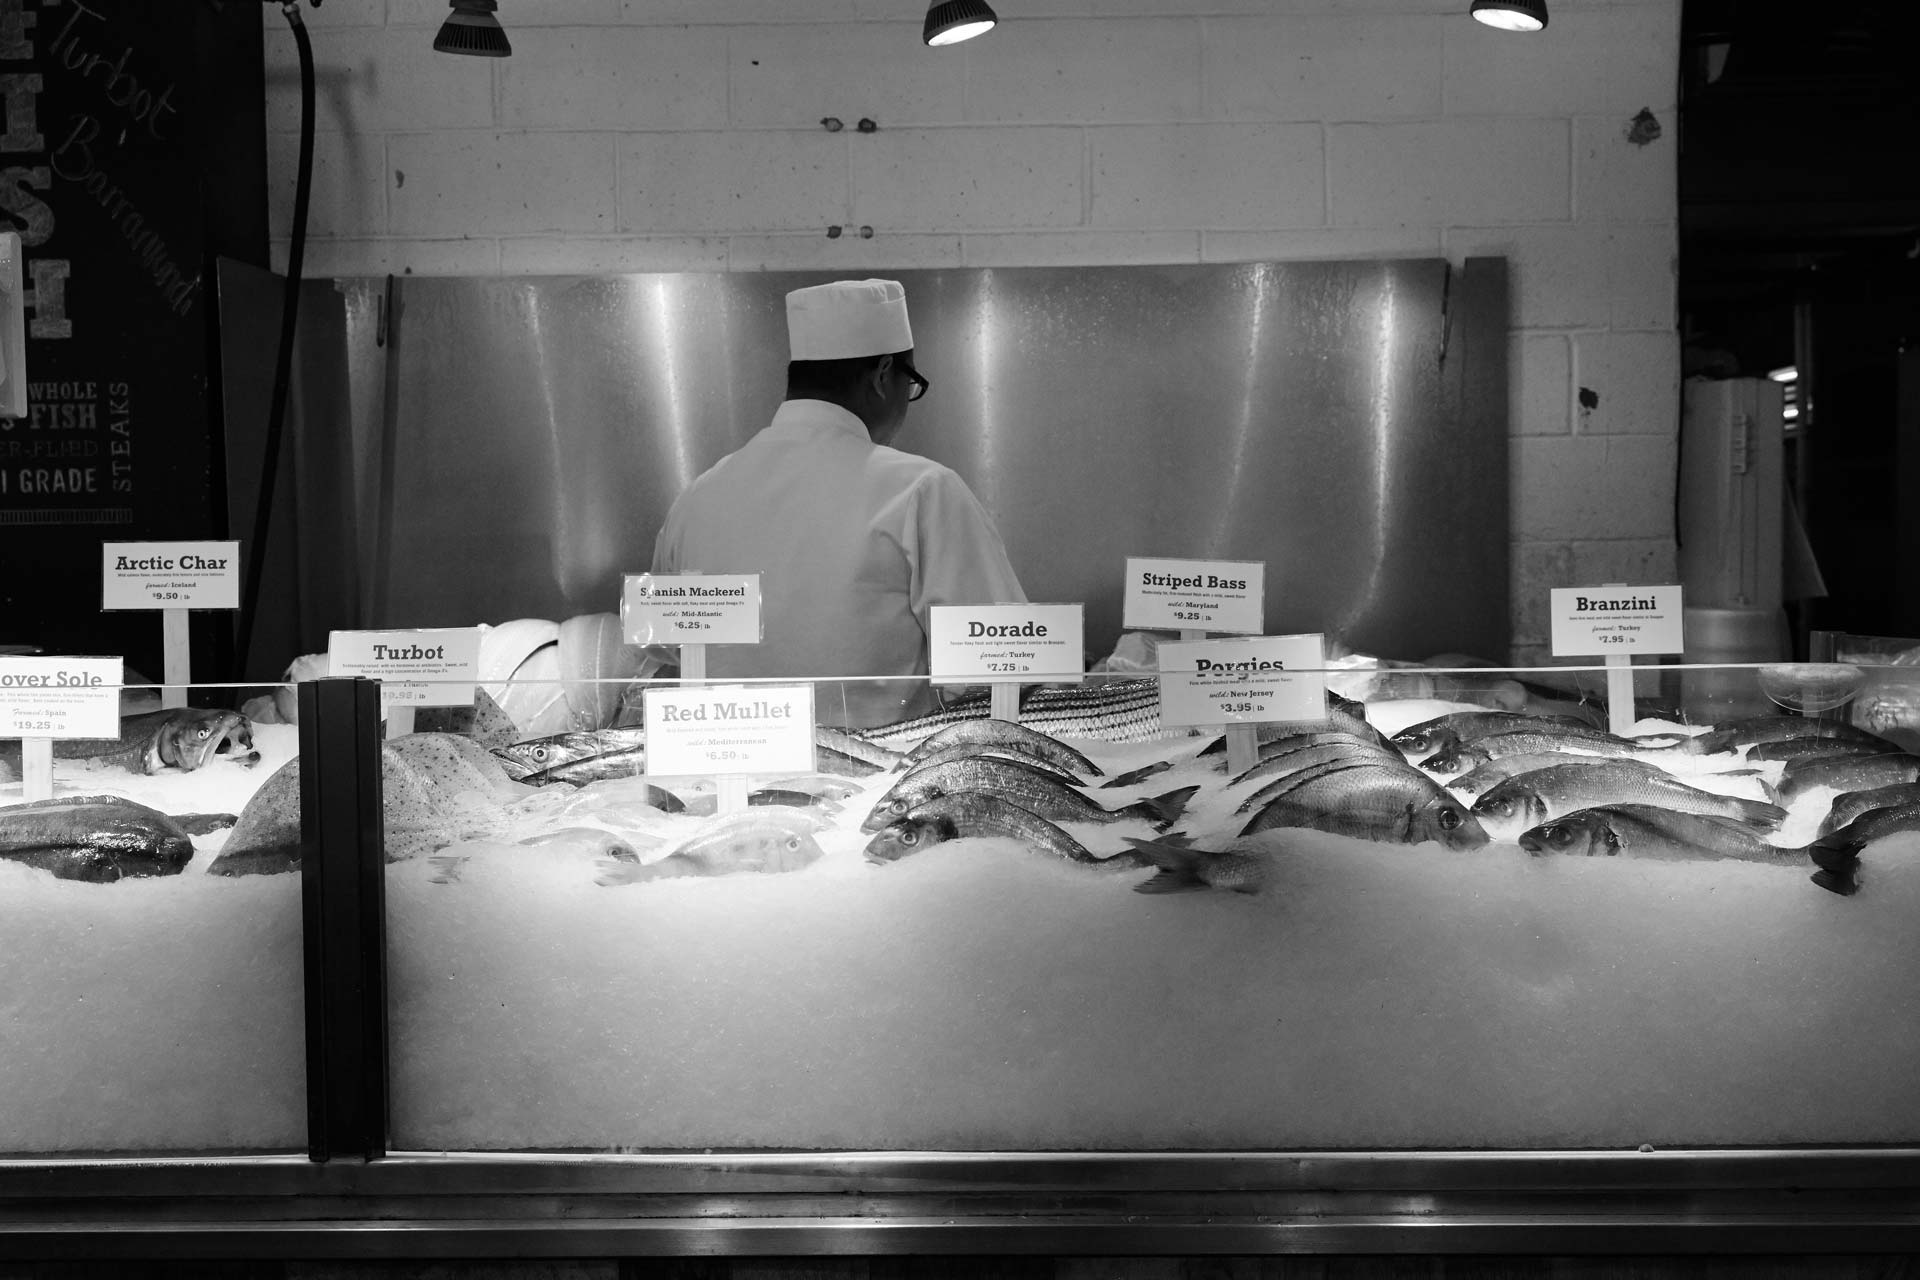 The Lobster Pound at Chelsea Market